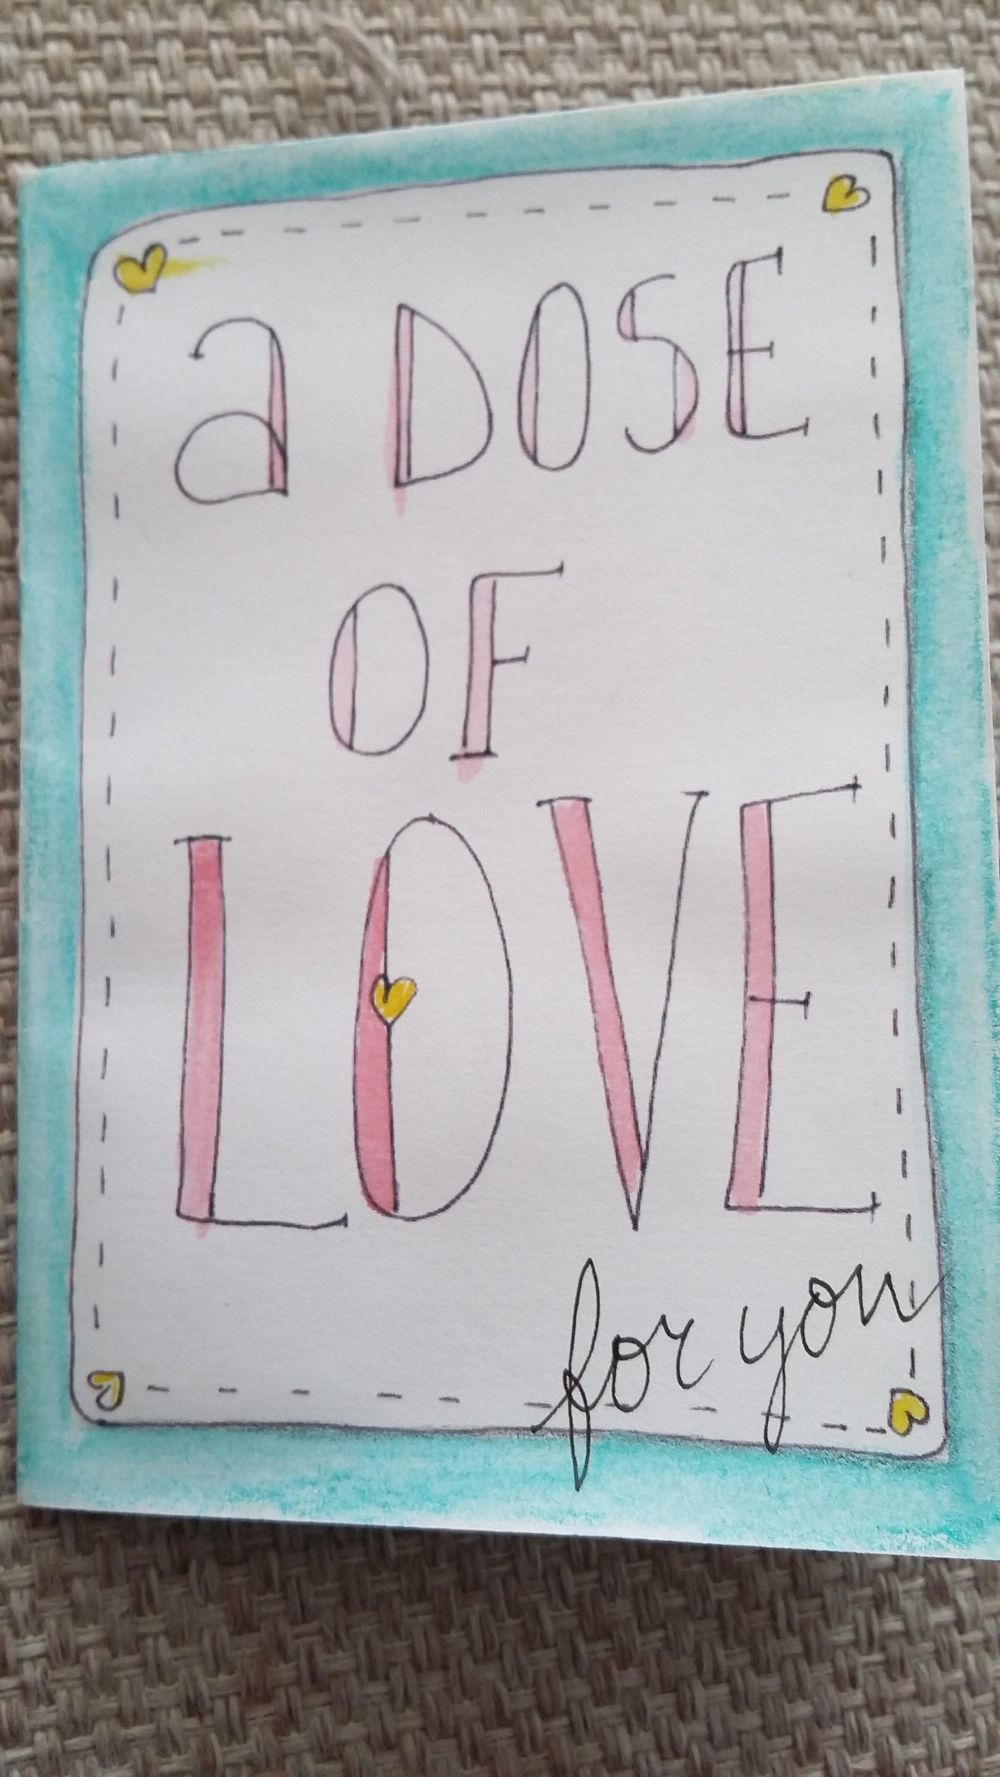 A dose of love - image 3 - student project